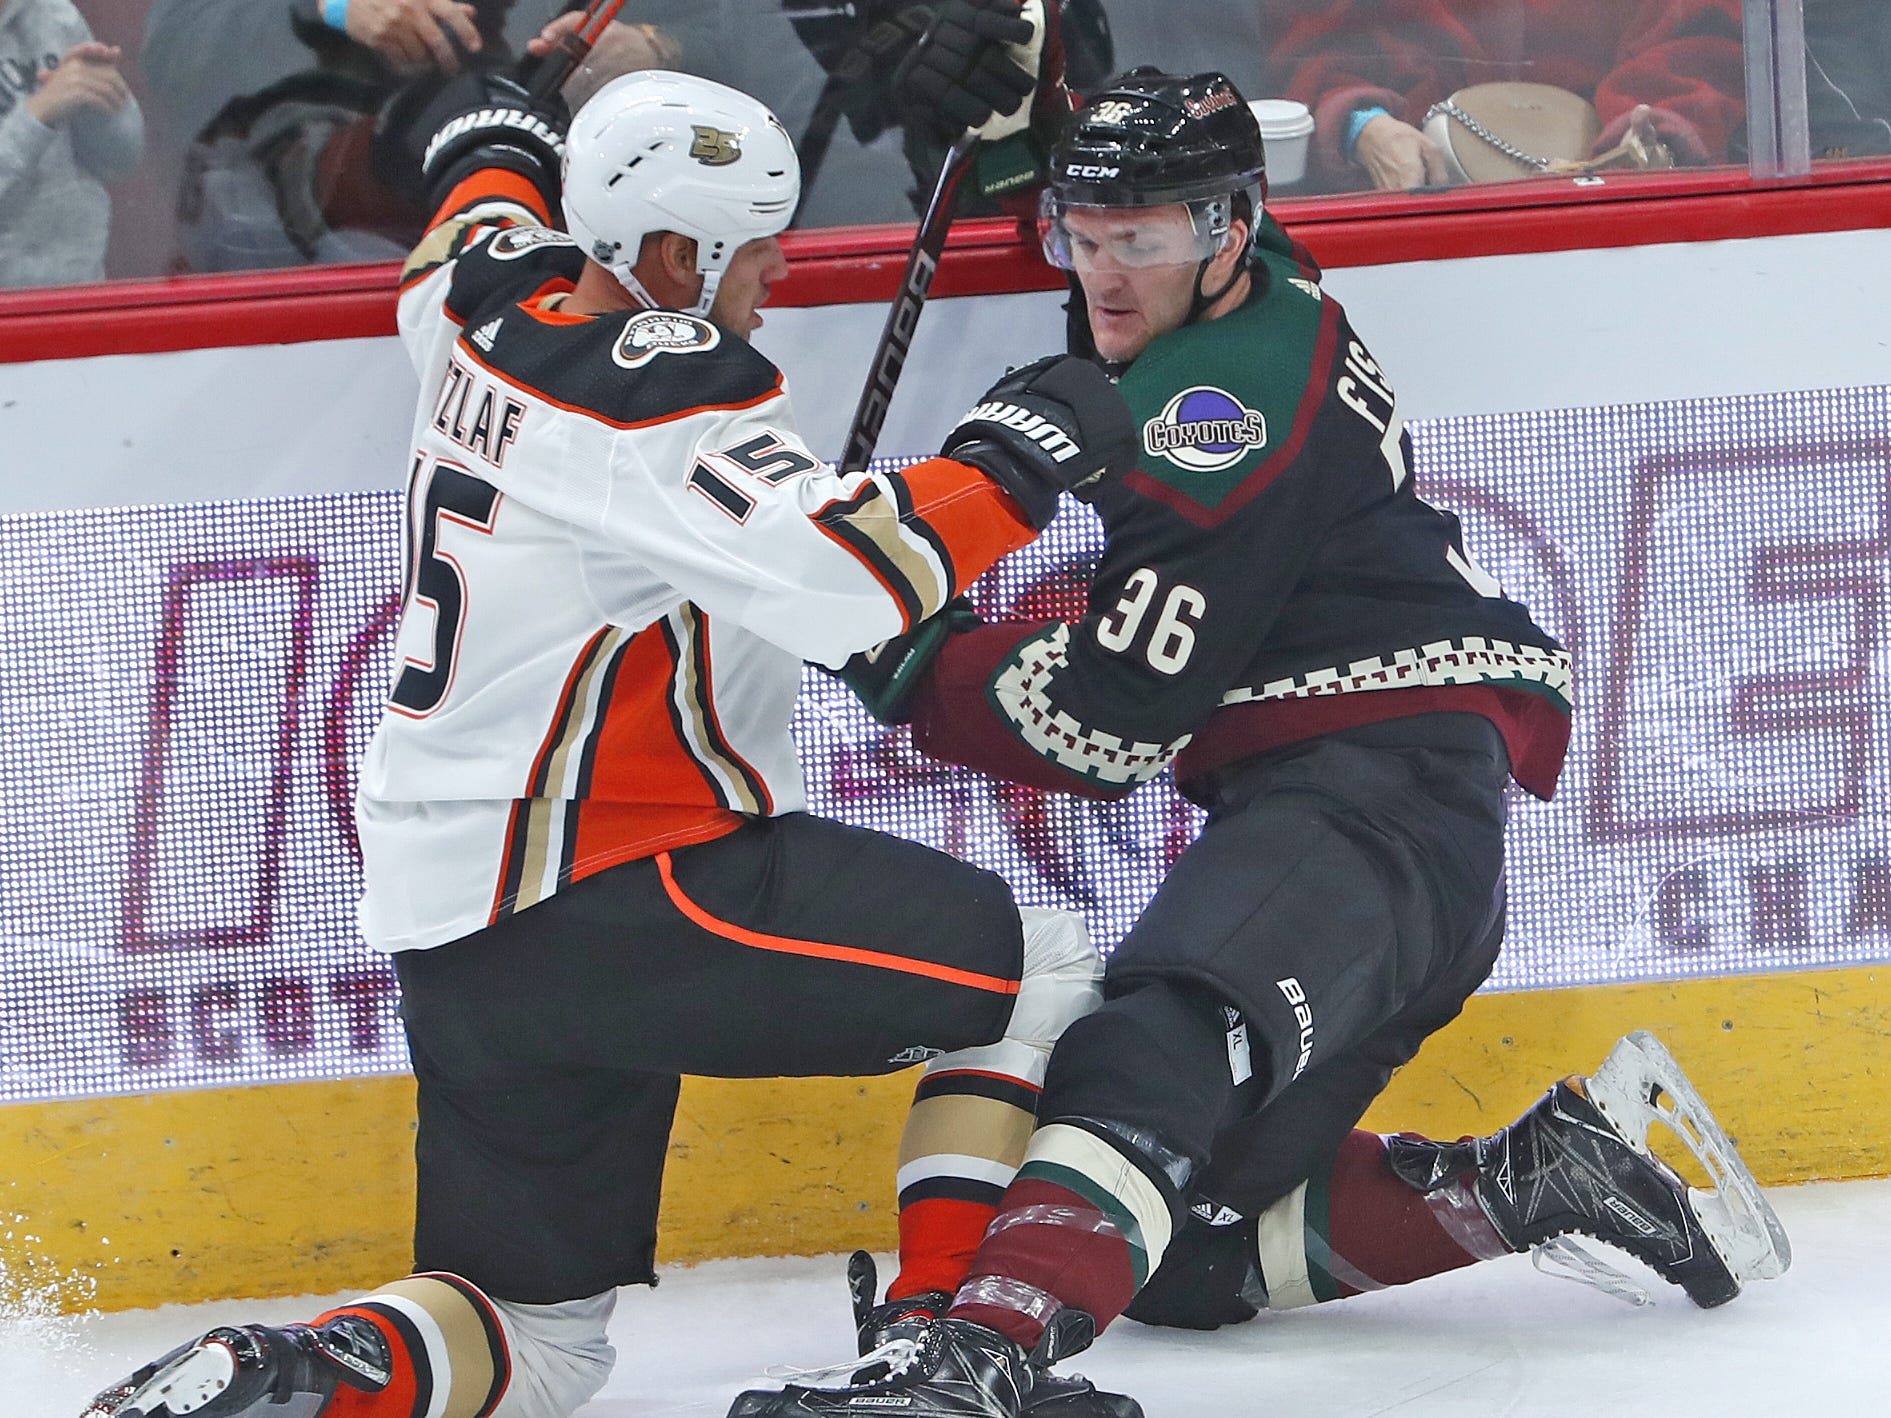 Coyotes Christian Fischer (36) and Ducks Ryan Getzlaf (15) fight for a loose puck during the first period at Gila River Arena in Glendale, Ariz. on October 6, 2018.